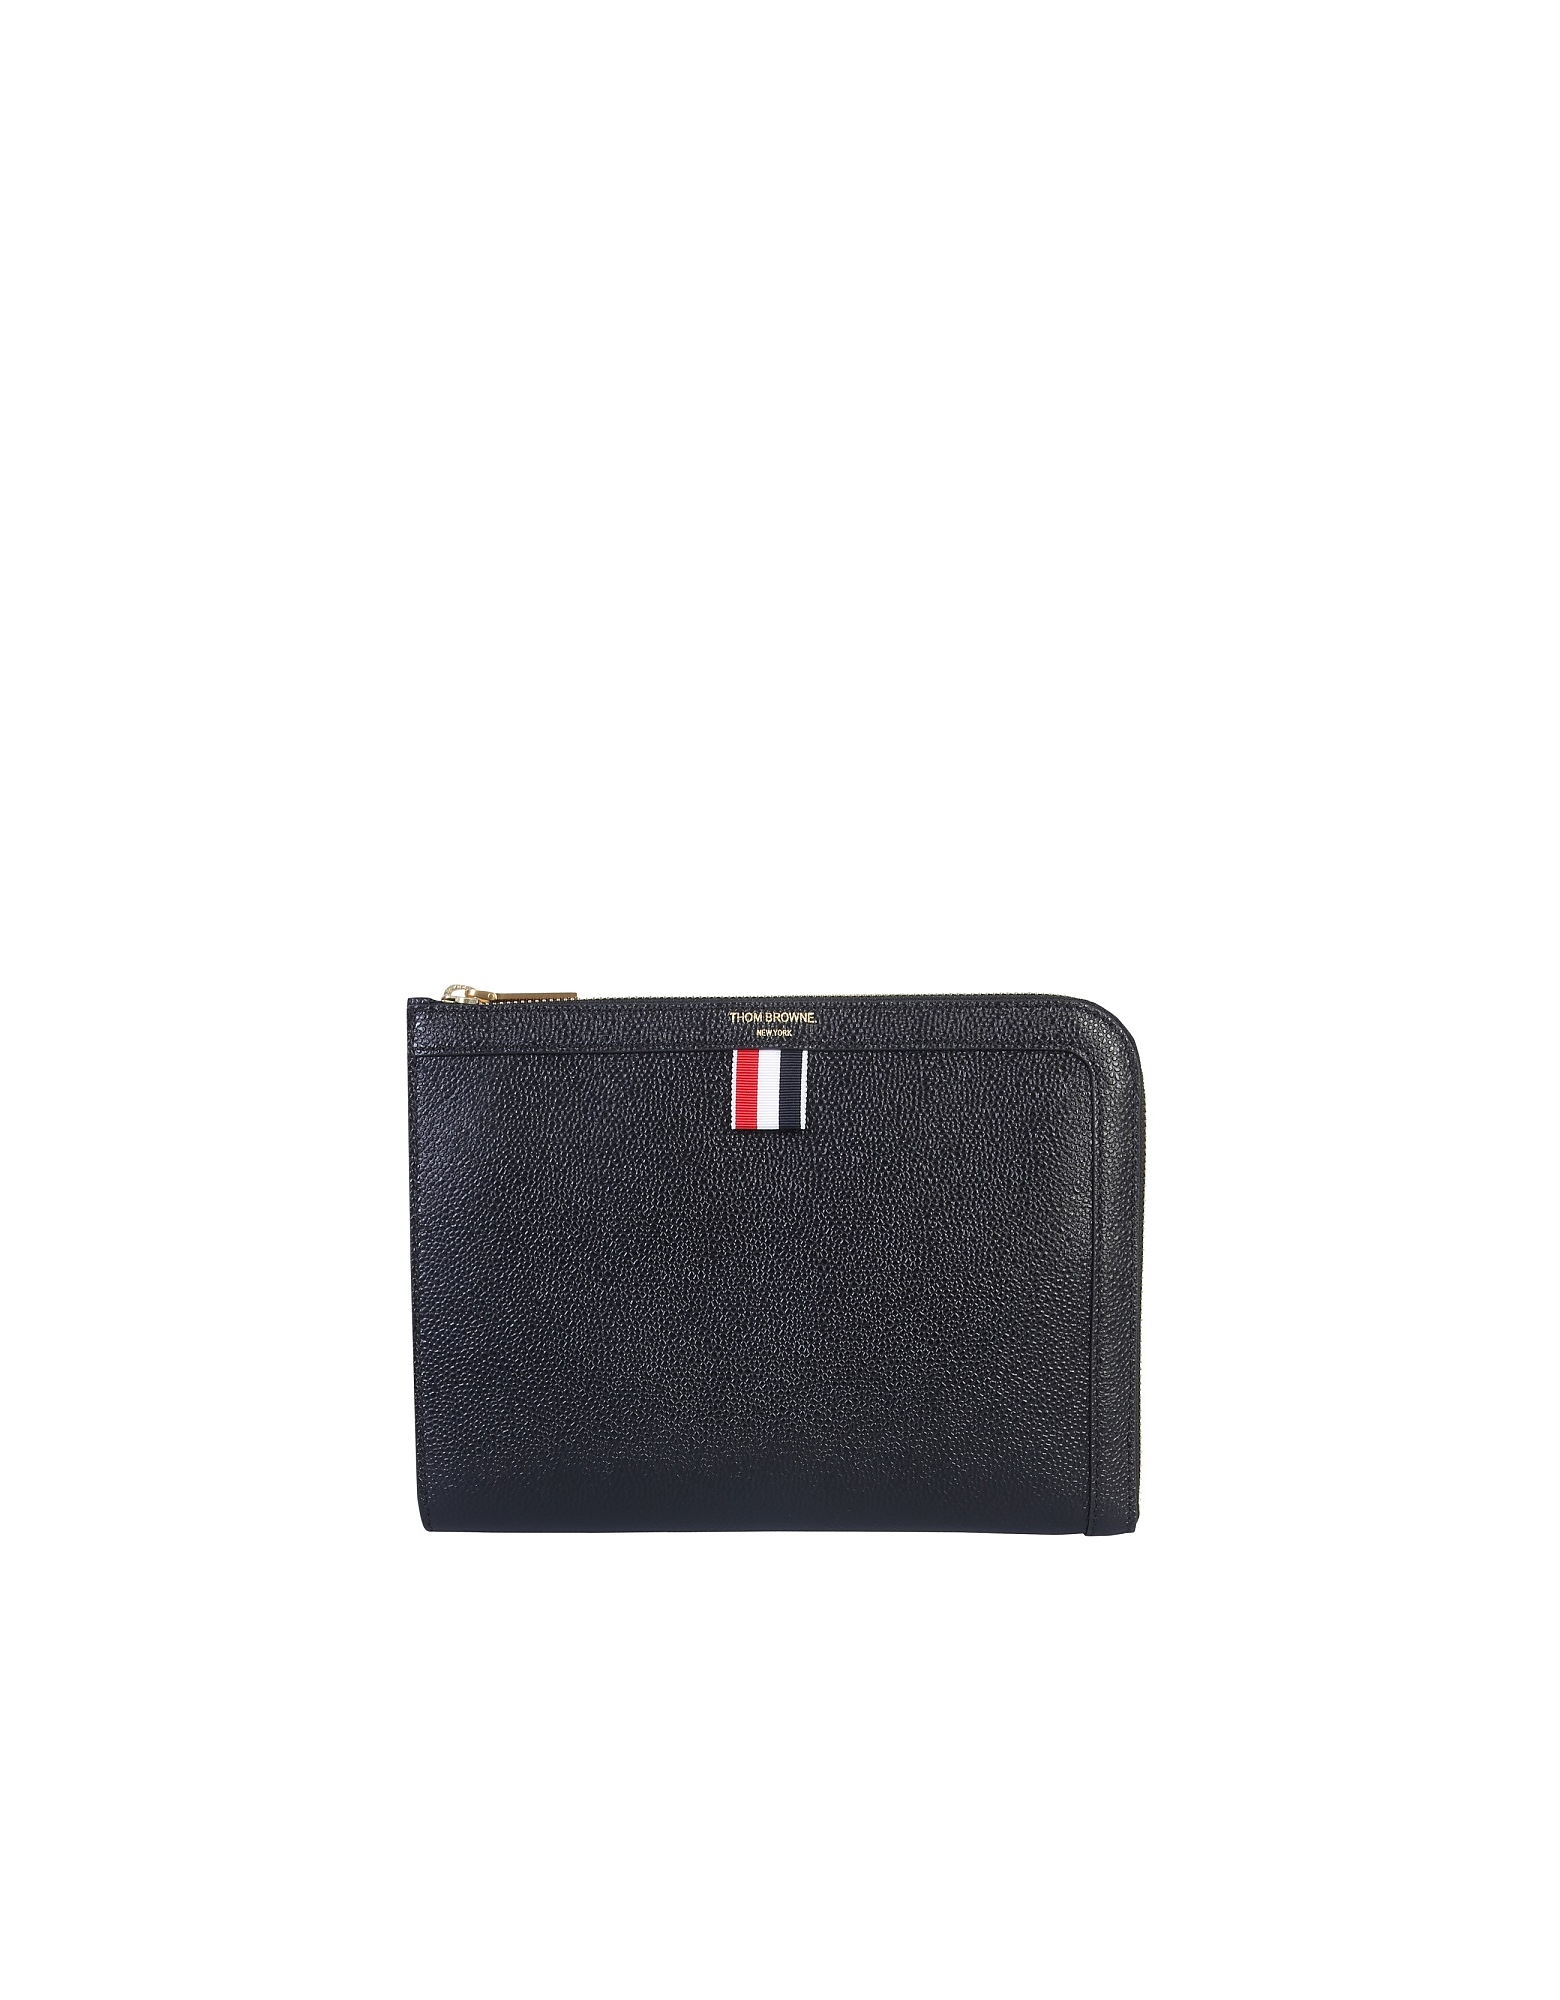 Thom Browne Designer Men's Bags, Small Document Holder